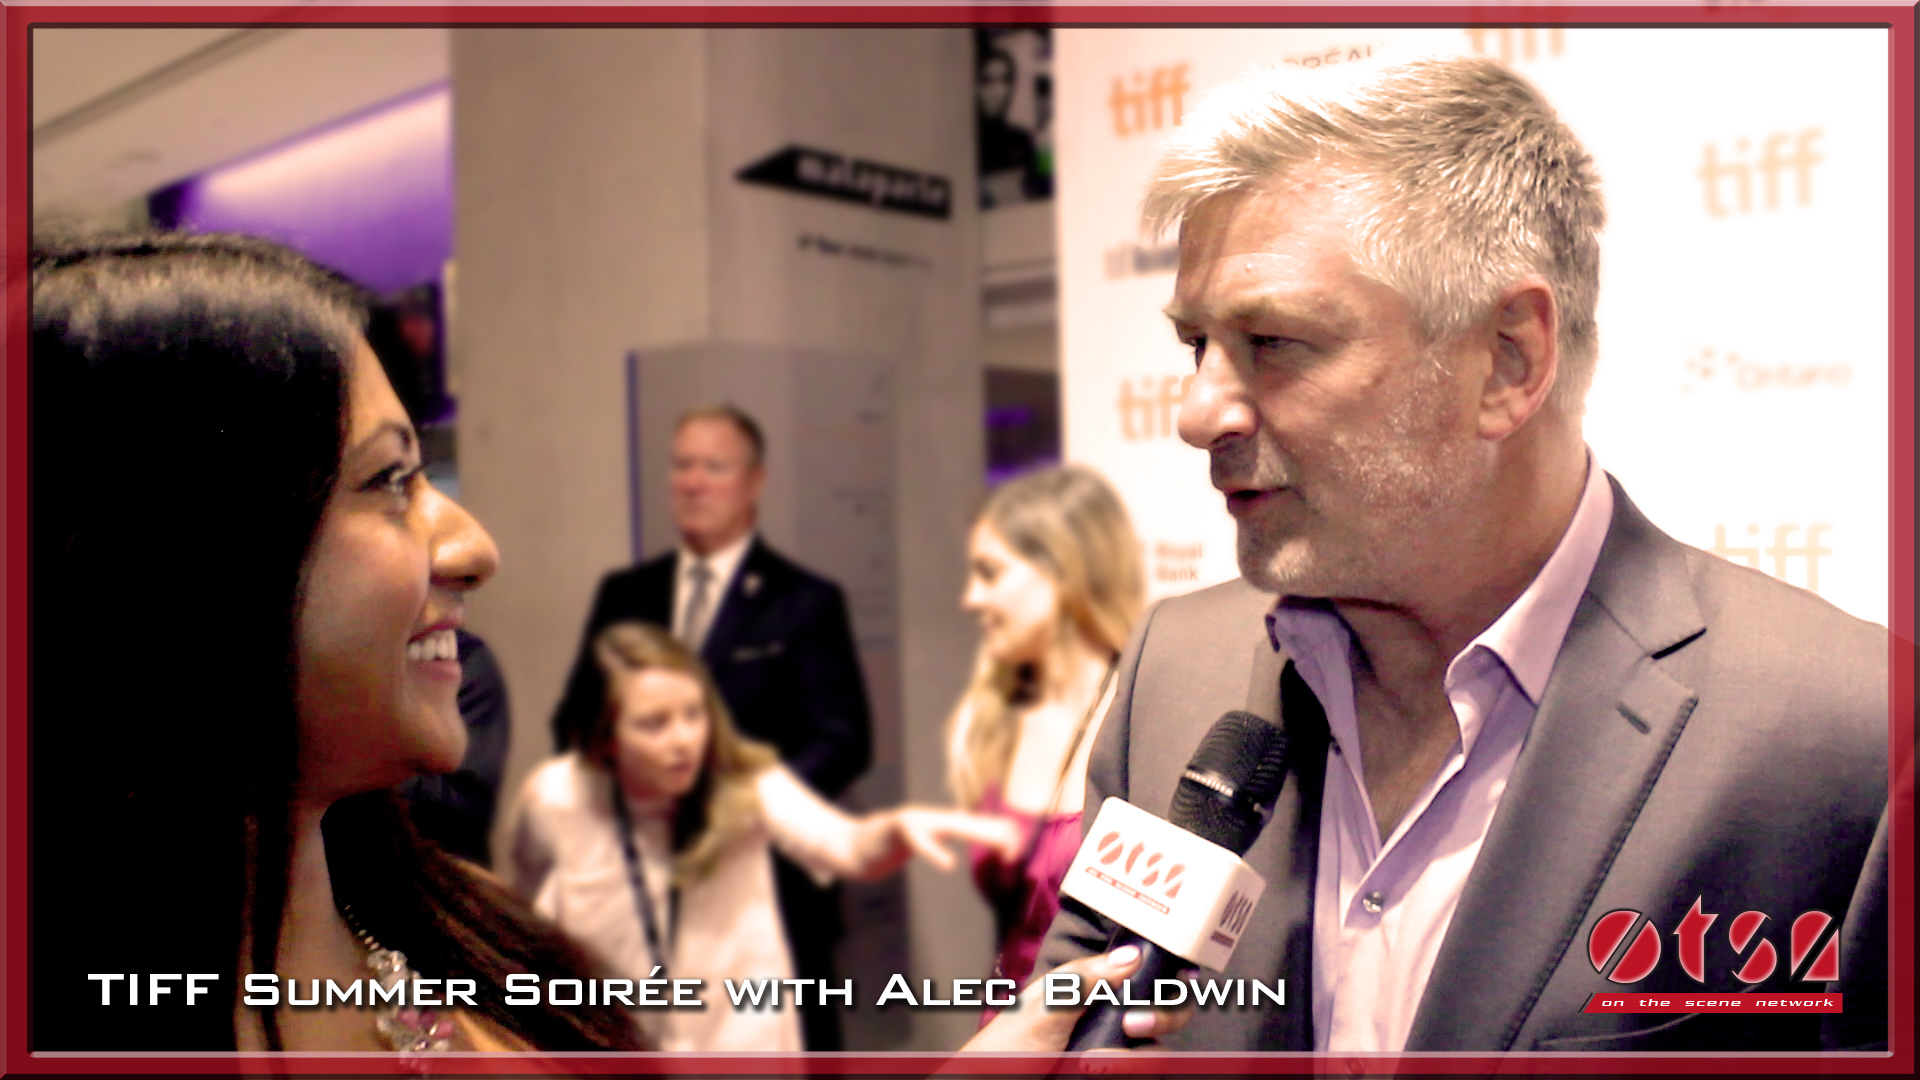 TIFF Summer Soirée with Alec Baldwin